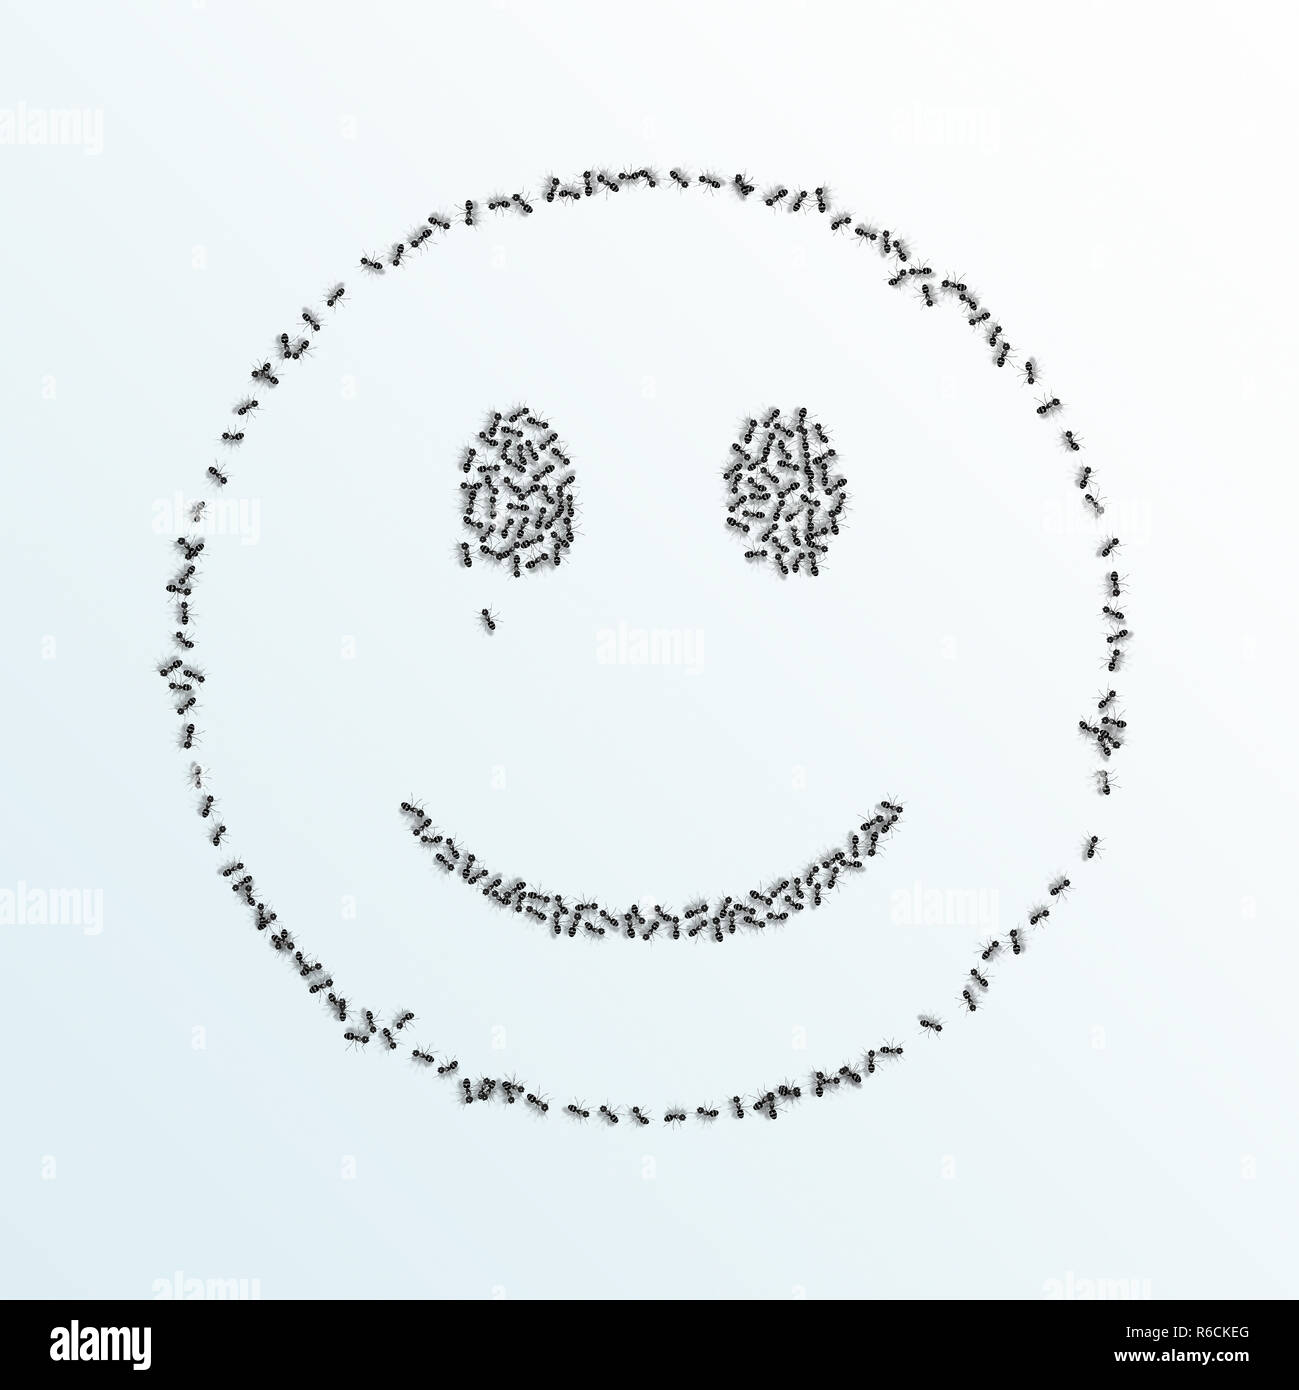 Monochrome digital image of ants forming an outline of a smiley face on a white background - Stock Image